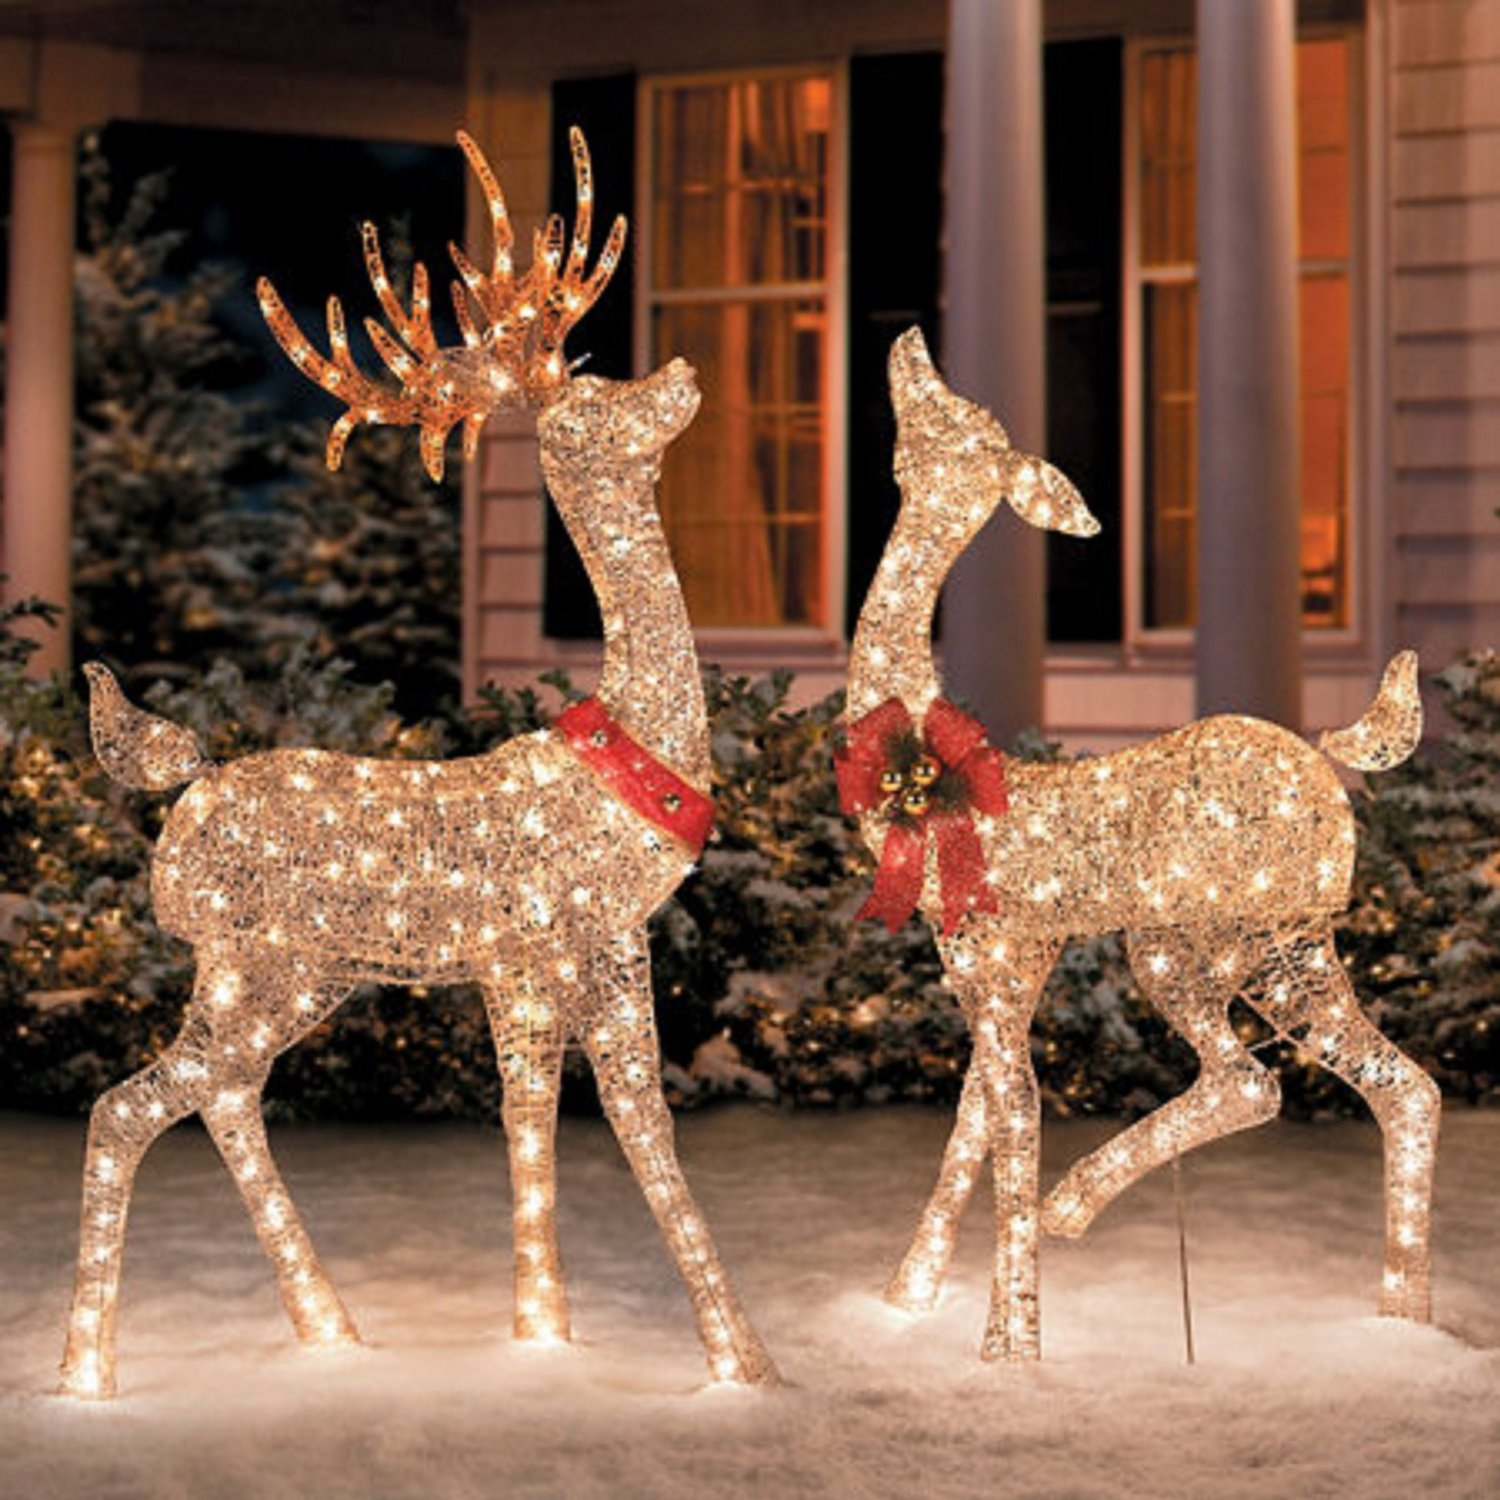 Outdoor christmas decorations - Outdoor Christmas Reindeer Decorations Lighted Outdoor Christmas Reindeer Decorations Lighted Show Home Design